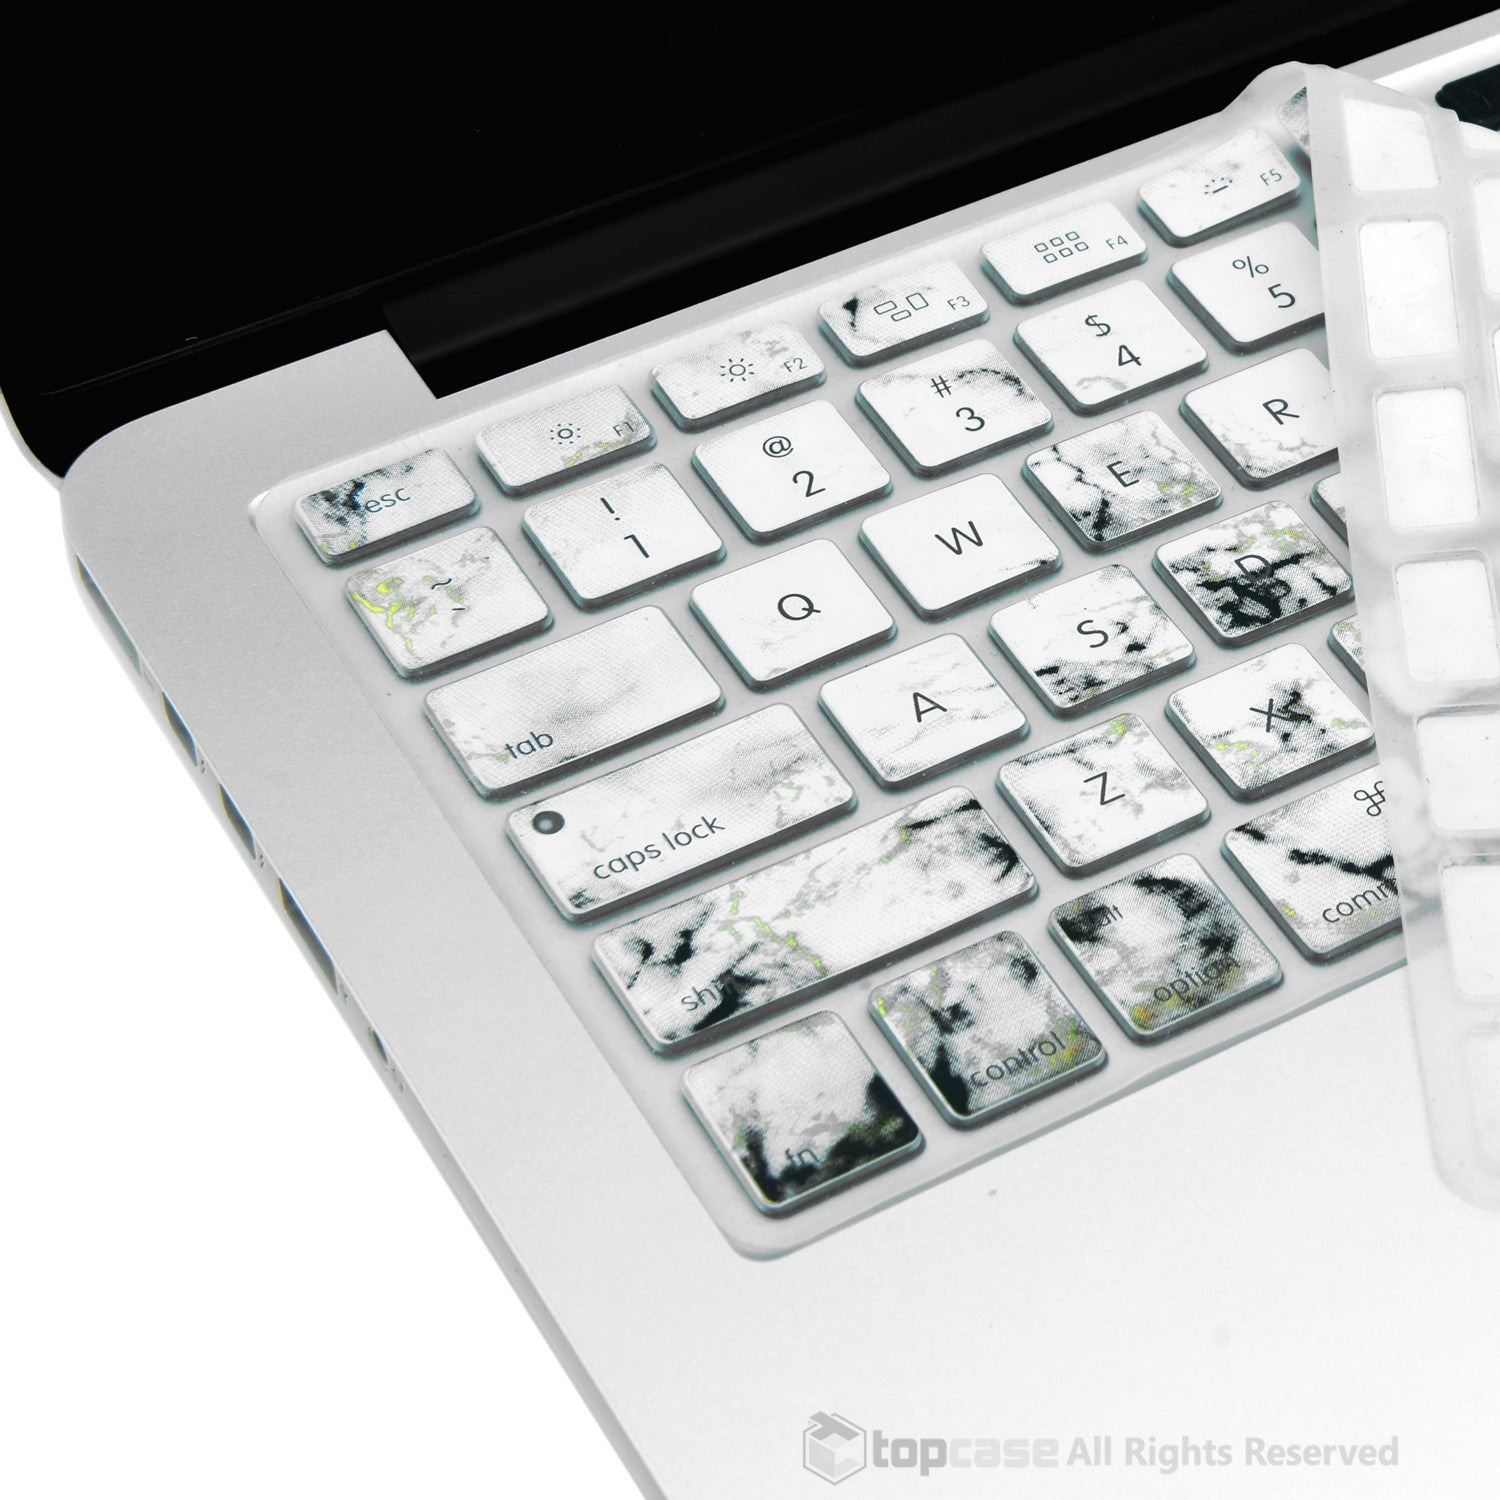 Book Cover Layout Keyboard : Marble pattern ultra thin soft silicone keyboard cover for